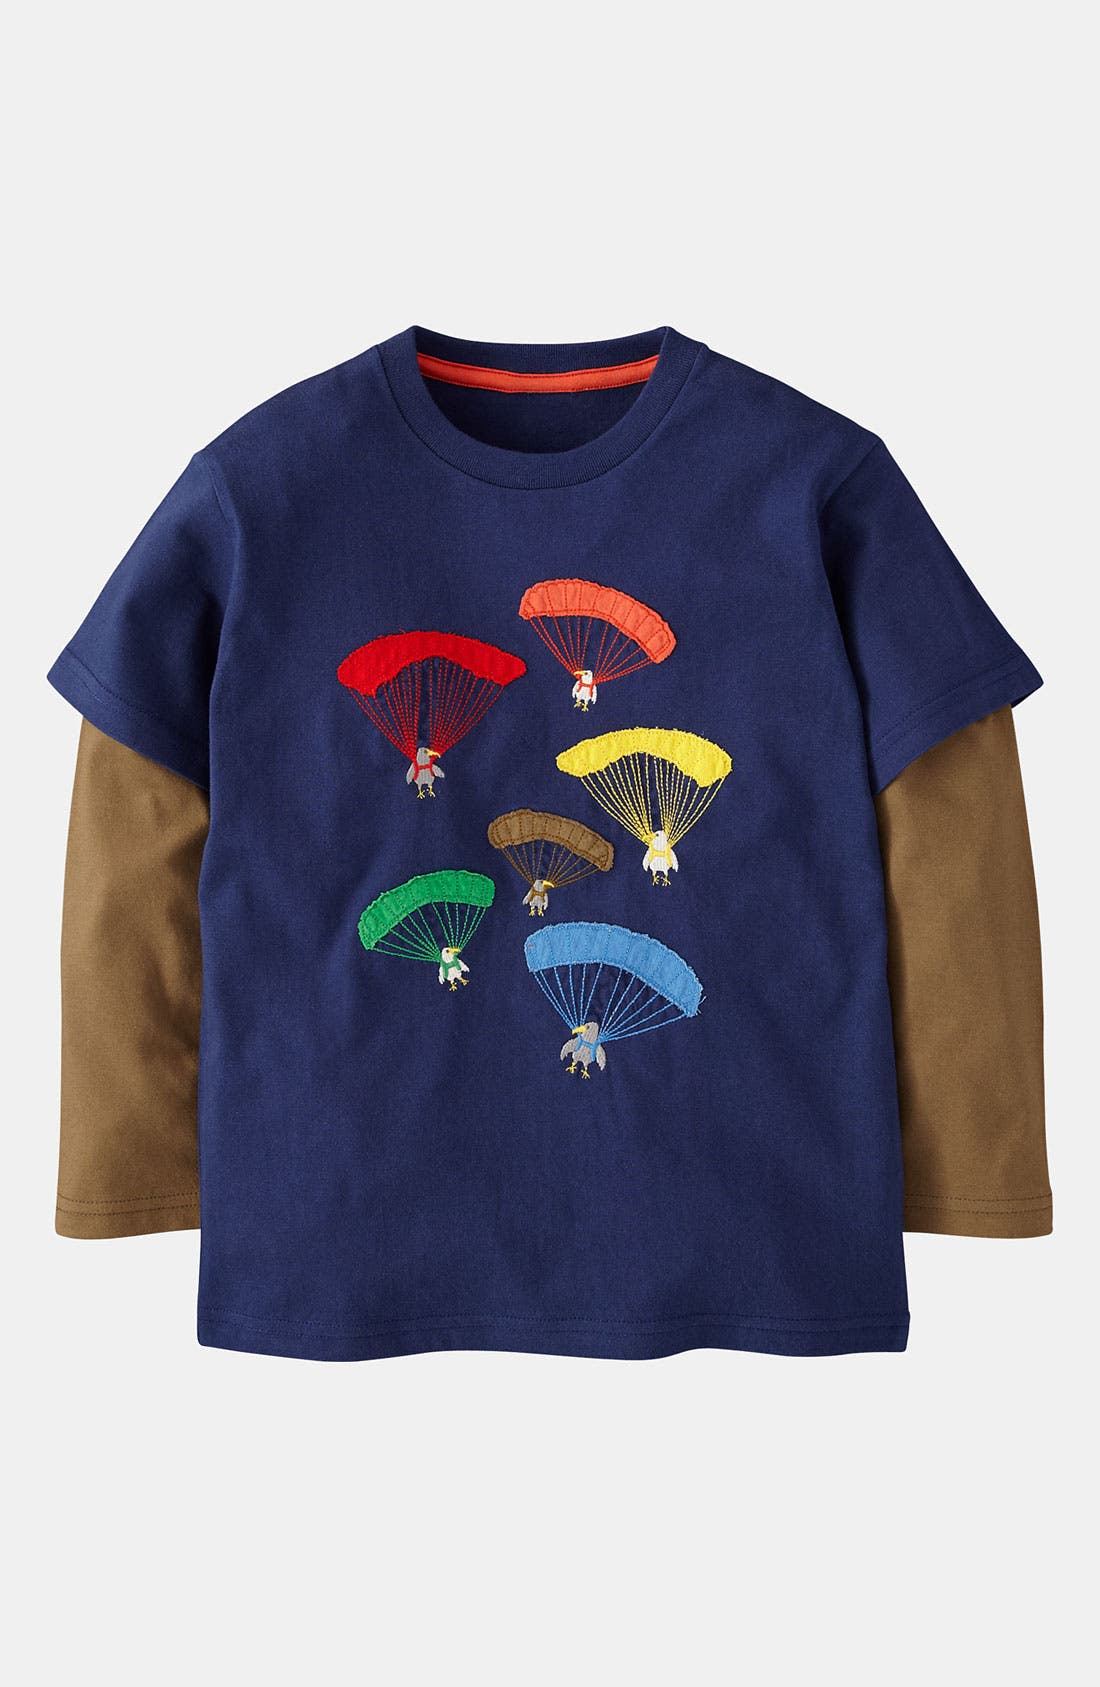 Main Image - Mini Boden 'Colorblast' T-Shirt (Toddler)